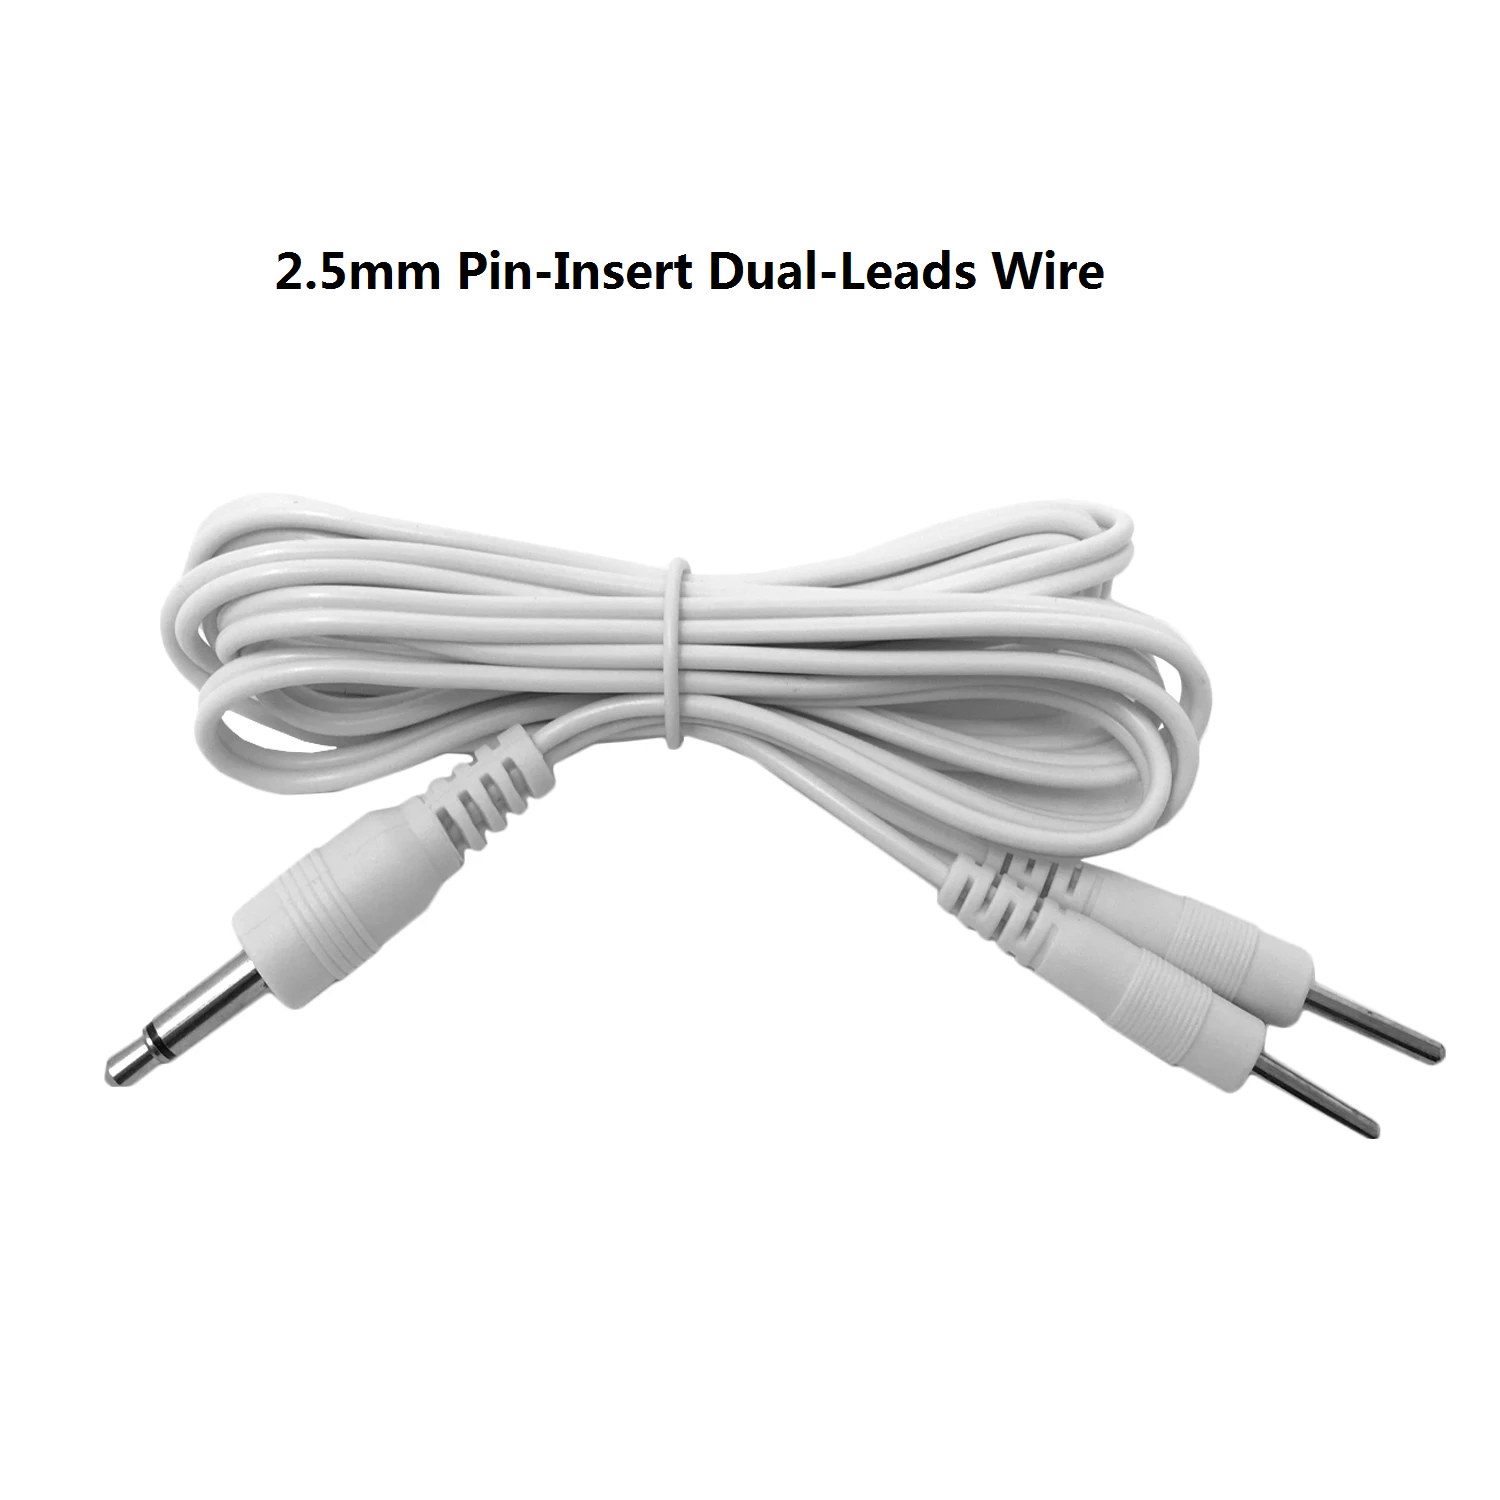 2 Sets of Pin-Insert Dual-Leads Electrode Wires - HealthmateForever